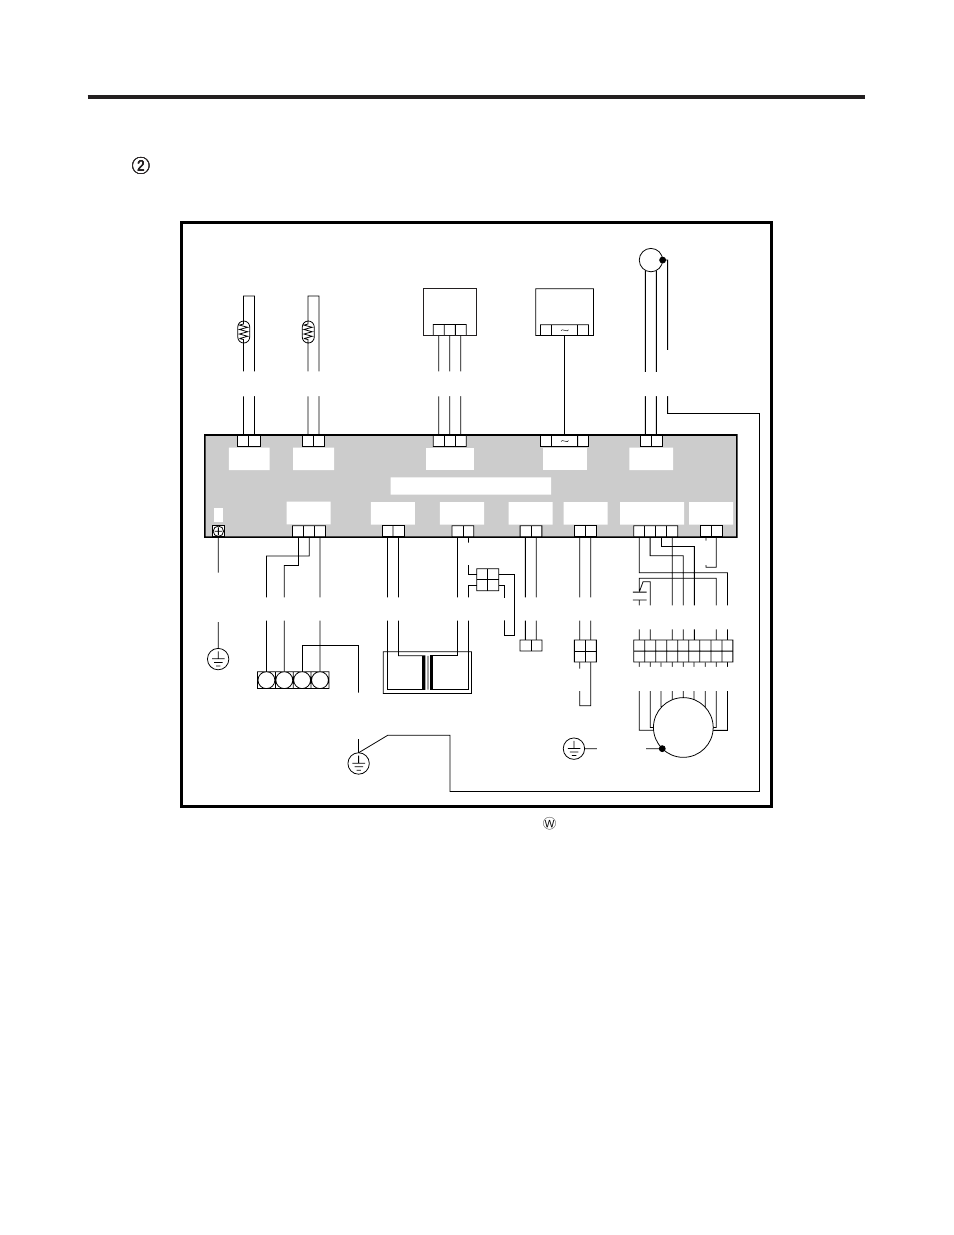 Mazda Tribute 2001 Engine Diagram also 2000 Lexus Gs300 Timing Diagram Wiring Diagrams further Mazda 3 Stereo Wiring Diagram furthermore 97 Ford Expedition Pats Wiring Diagram likewise Gmc Fuel Pump Wiring Diagram. on miata speaker wiring diagram